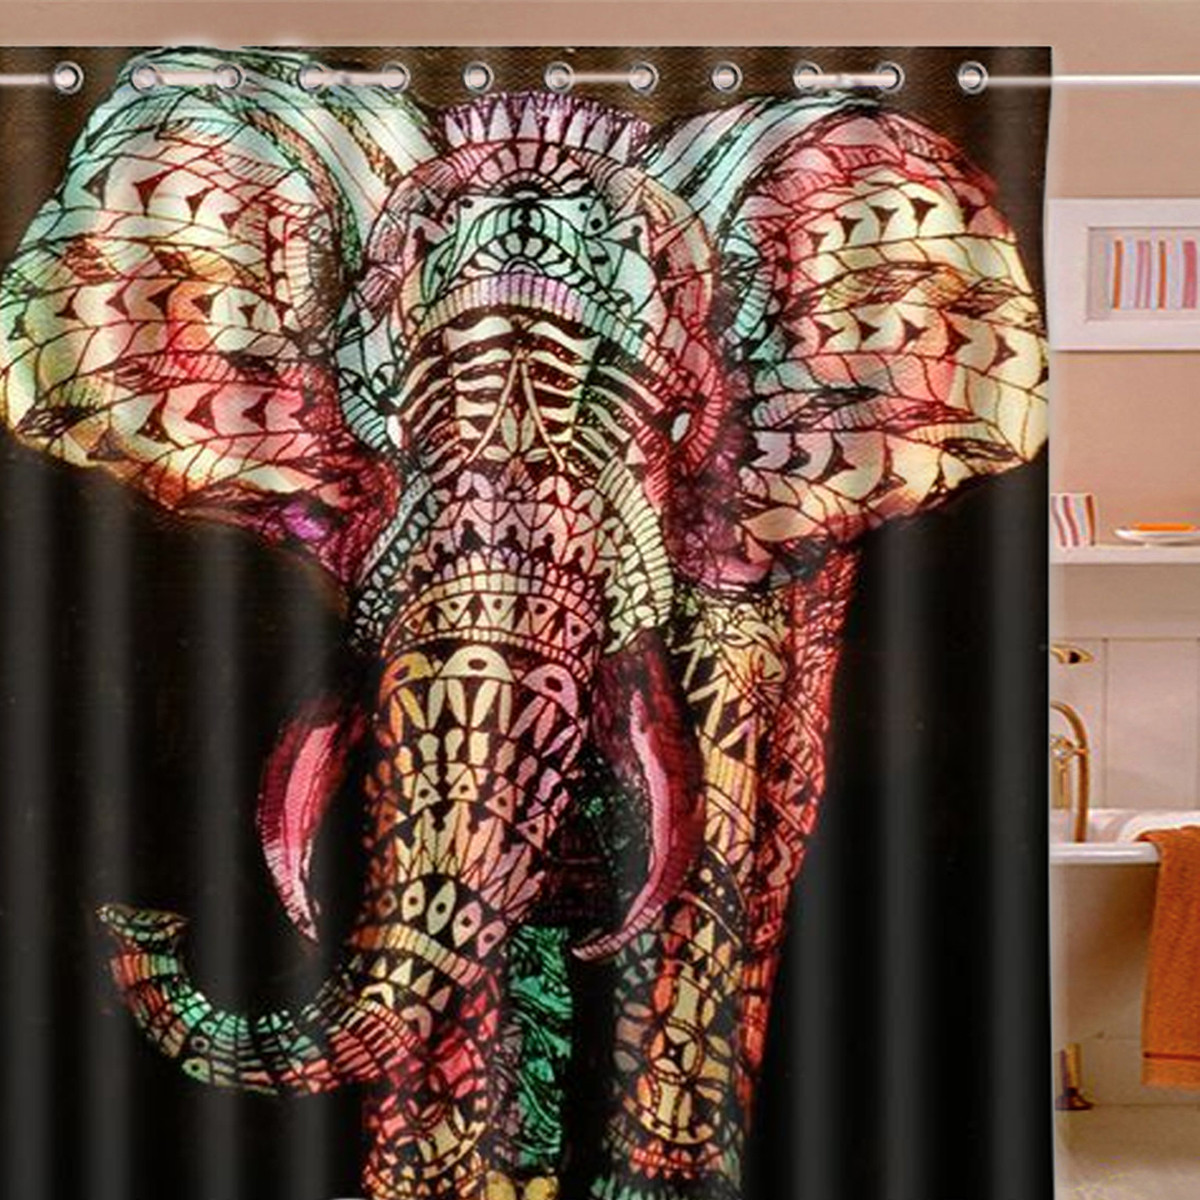 180x180cm Waterproof Colorful Elephant Polyester Shower Curtain Bathroom Decor with 12 Hooks